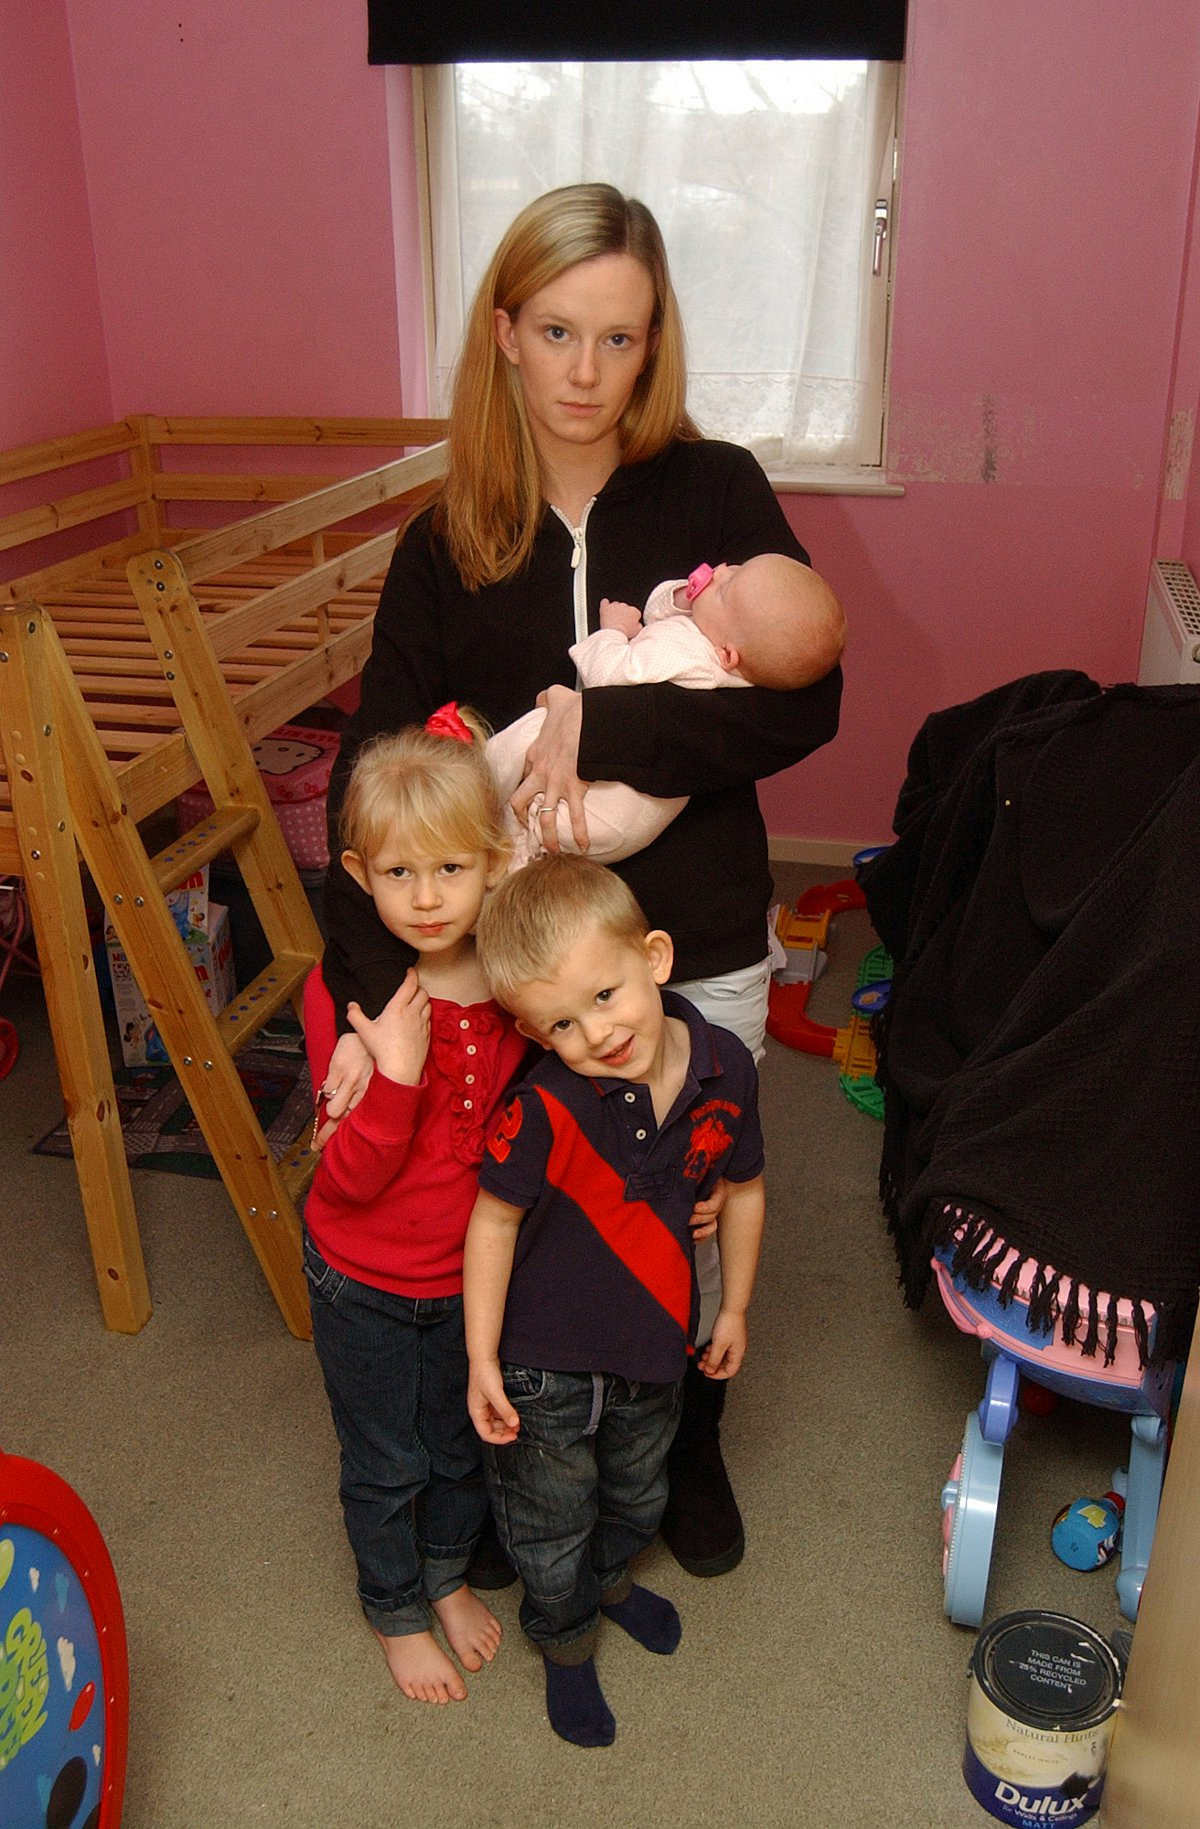 St Mary Cray mother left homeless for Christmas after roof of her block of flats falls in